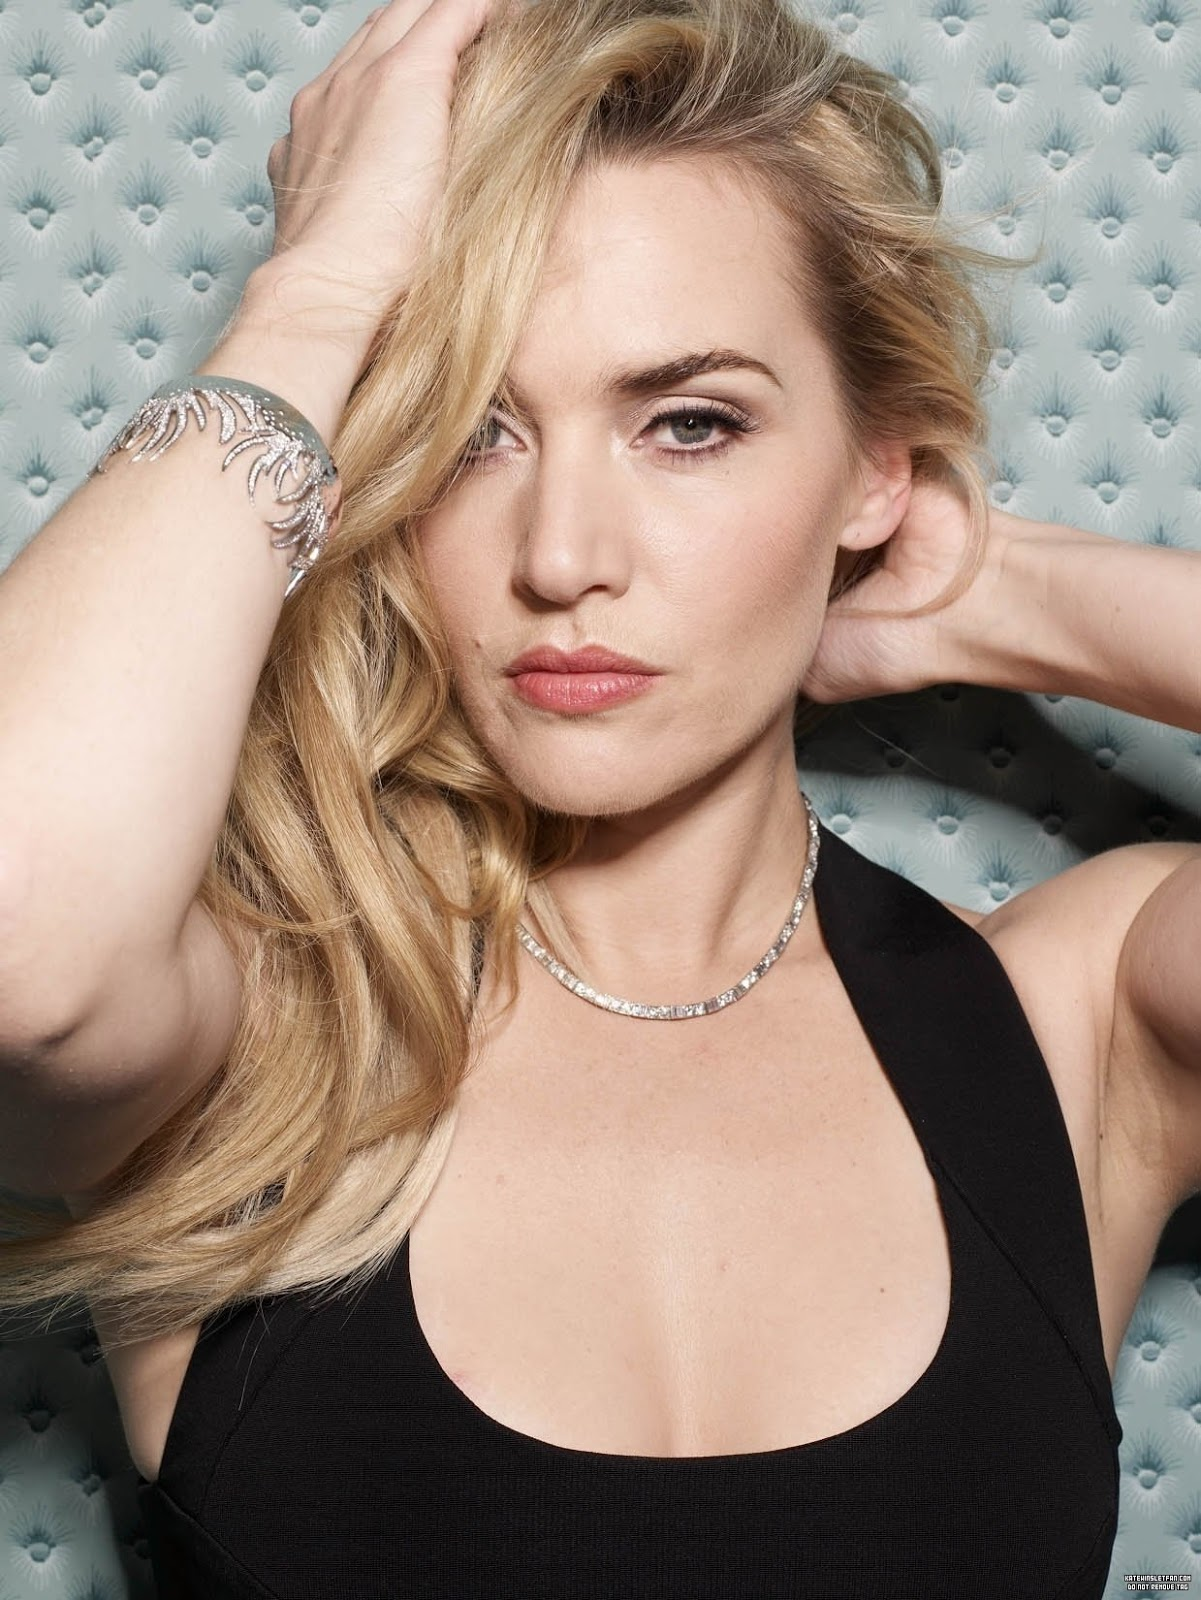 Kate Winslet nudes (18 pics), hot Selfie, Snapchat, swimsuit 2016